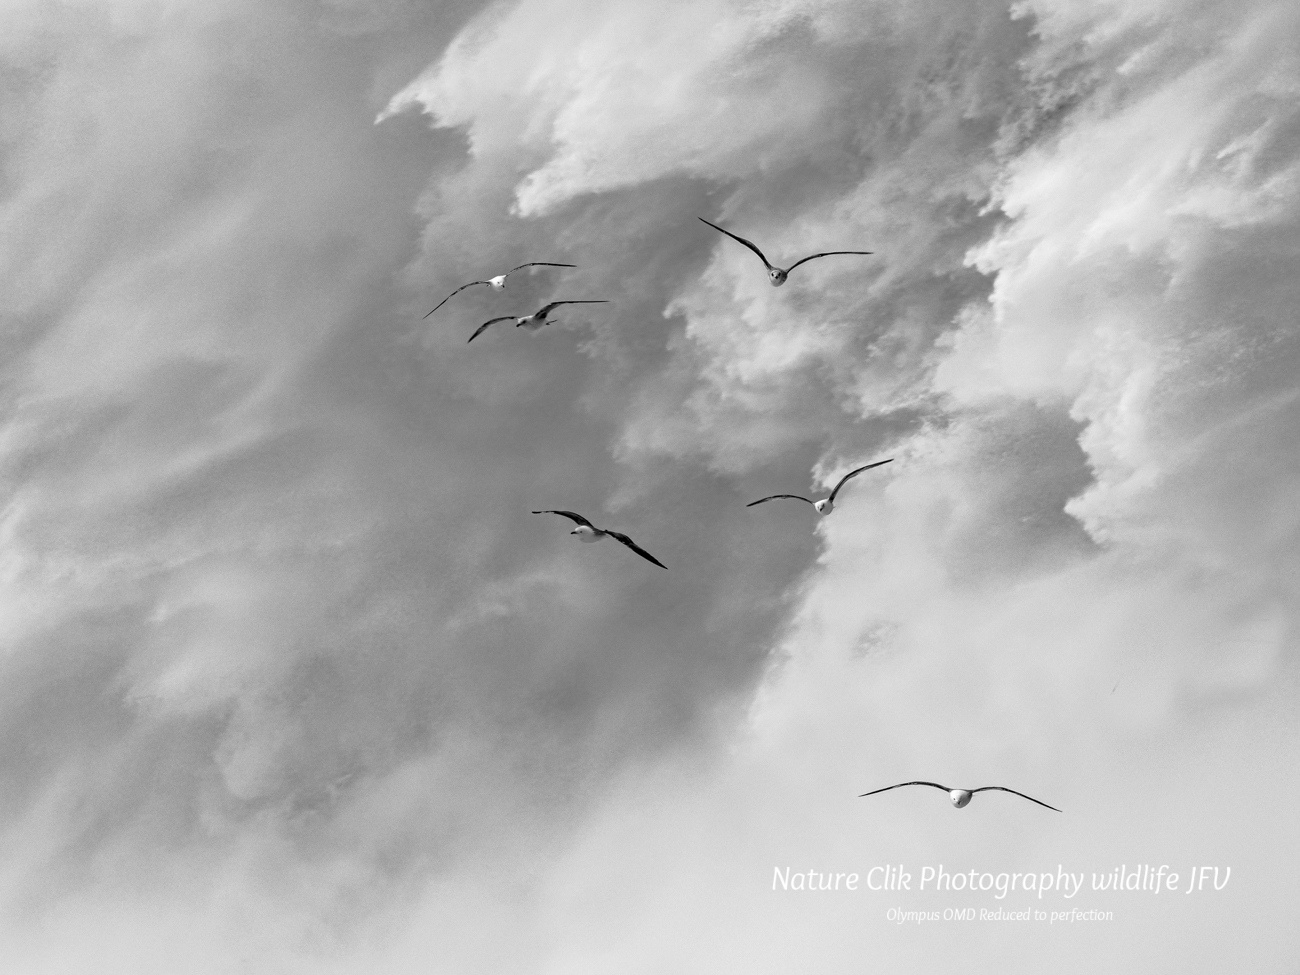 The best - Nature Clik Photography wildlife JFV, Olympus OMD Reduced to perfection